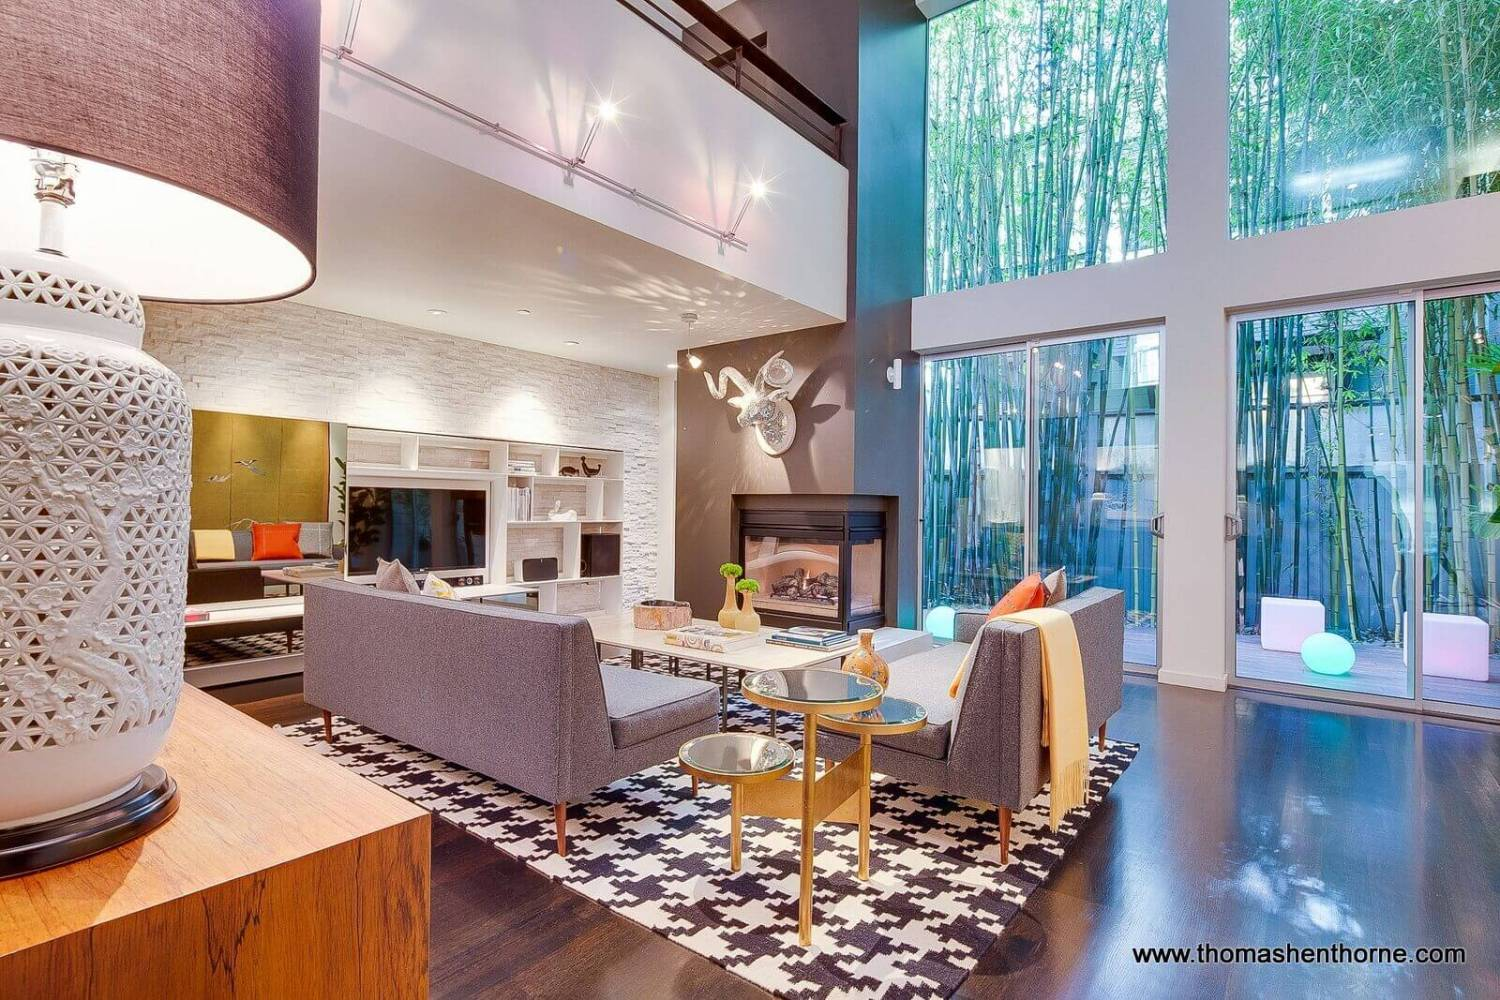 124 Lily Street San Francisco Living Room with fireplace and deck beyond glass doors